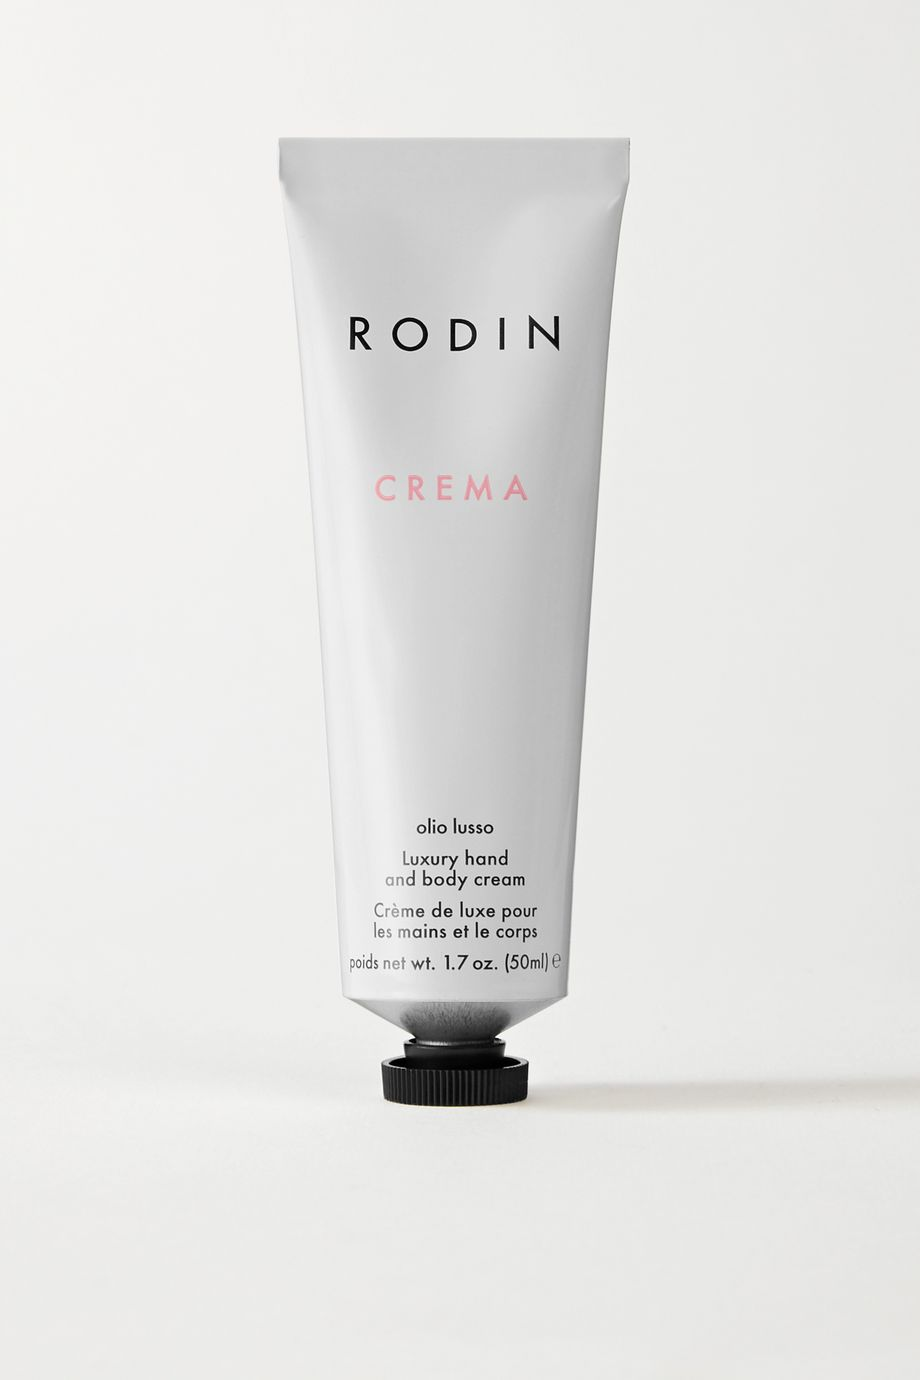 Rodin Luxury Hand and Body Cream - Geranium and Orange Blossom, 50ml